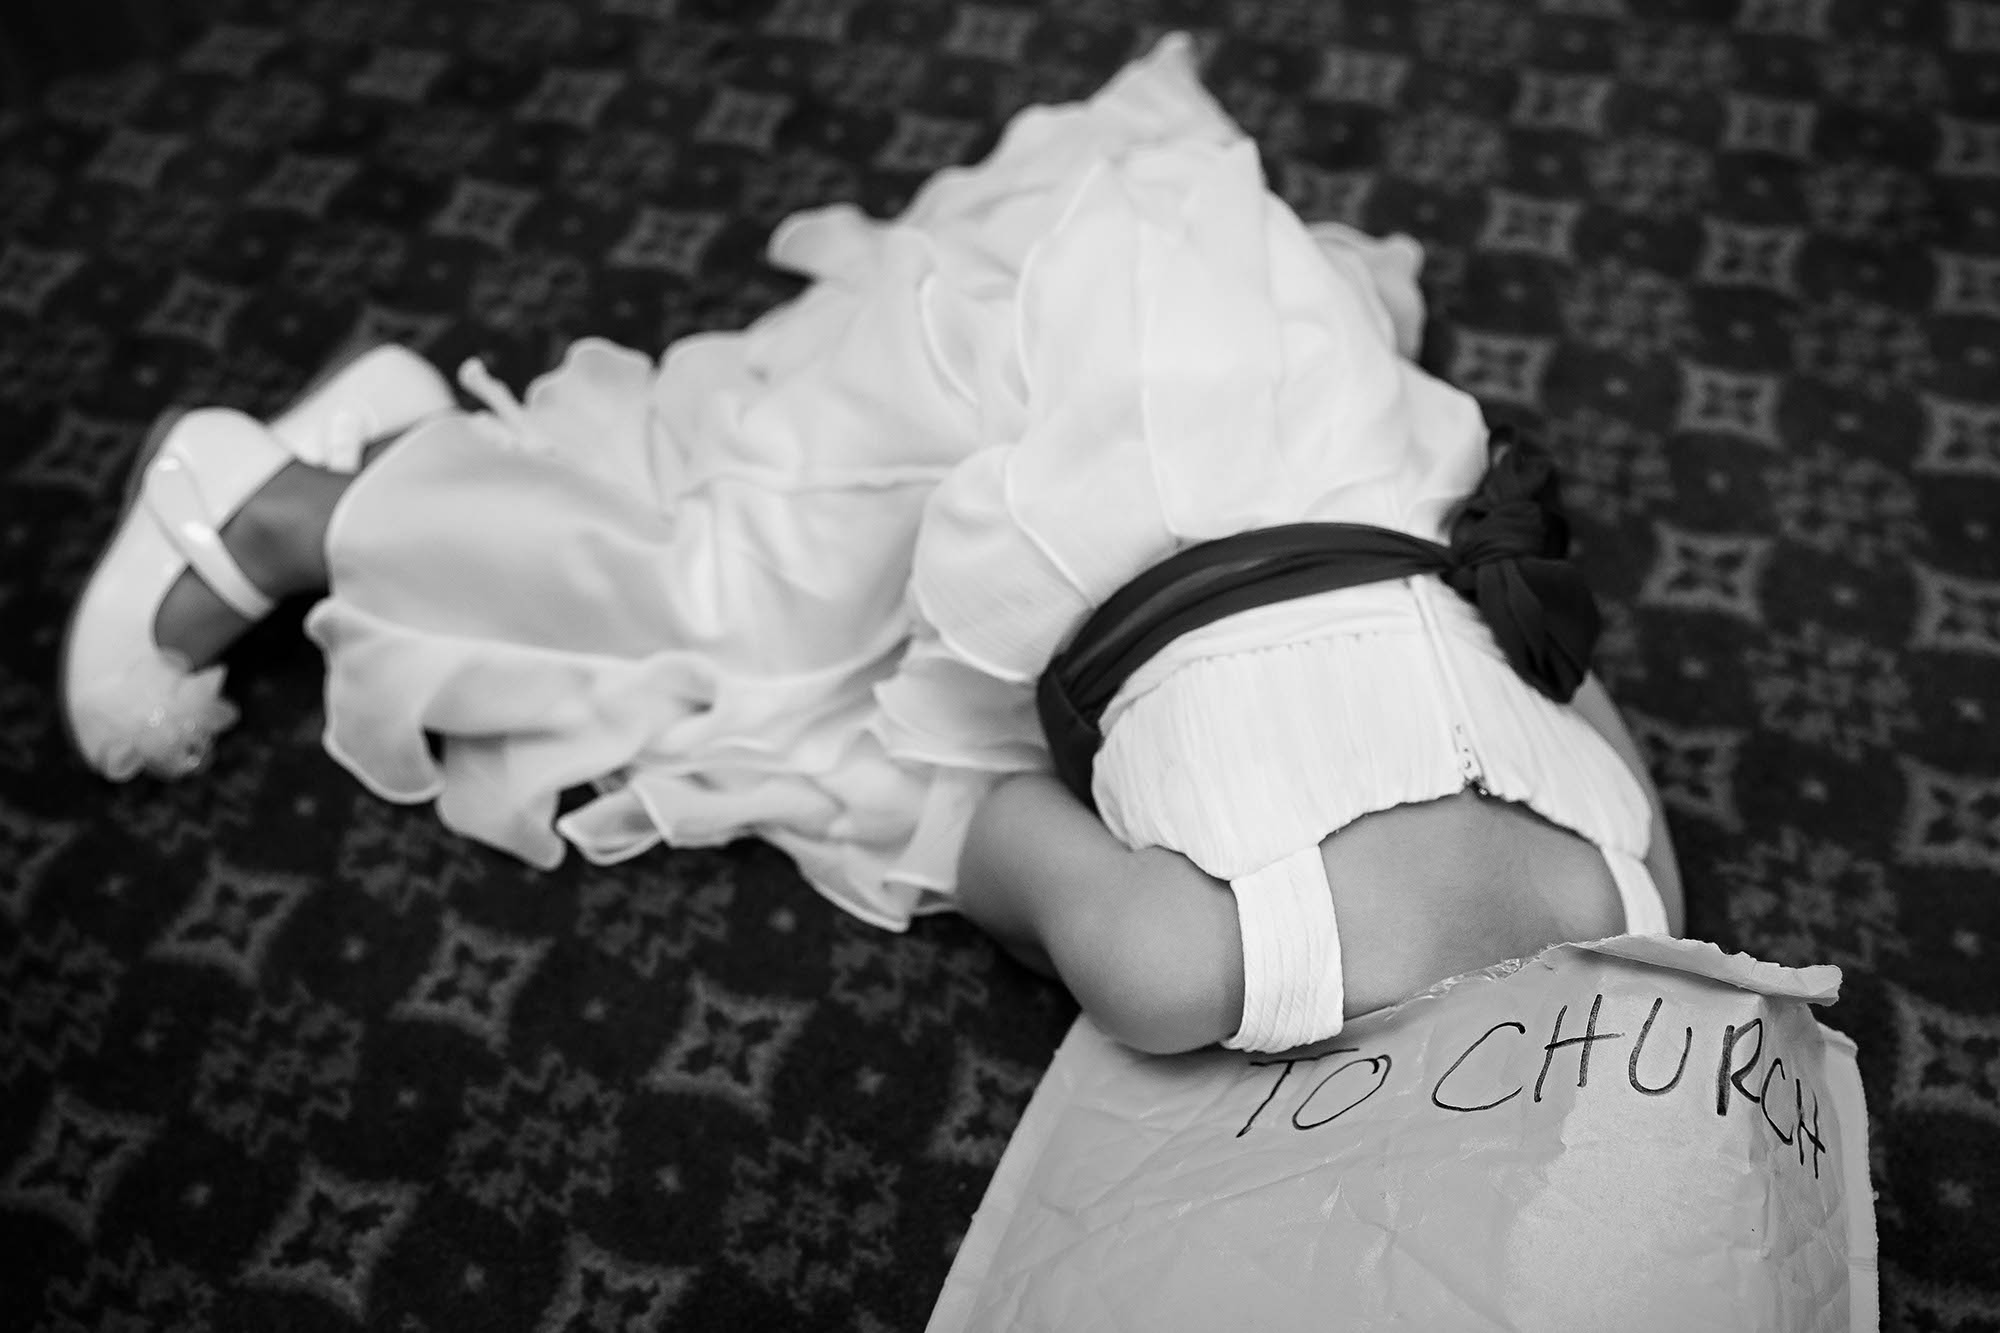 """Flower girl tries to hide inside a manila envelope labeled """"To Church"""" just moments before she is supposed to walk down the aisle."""